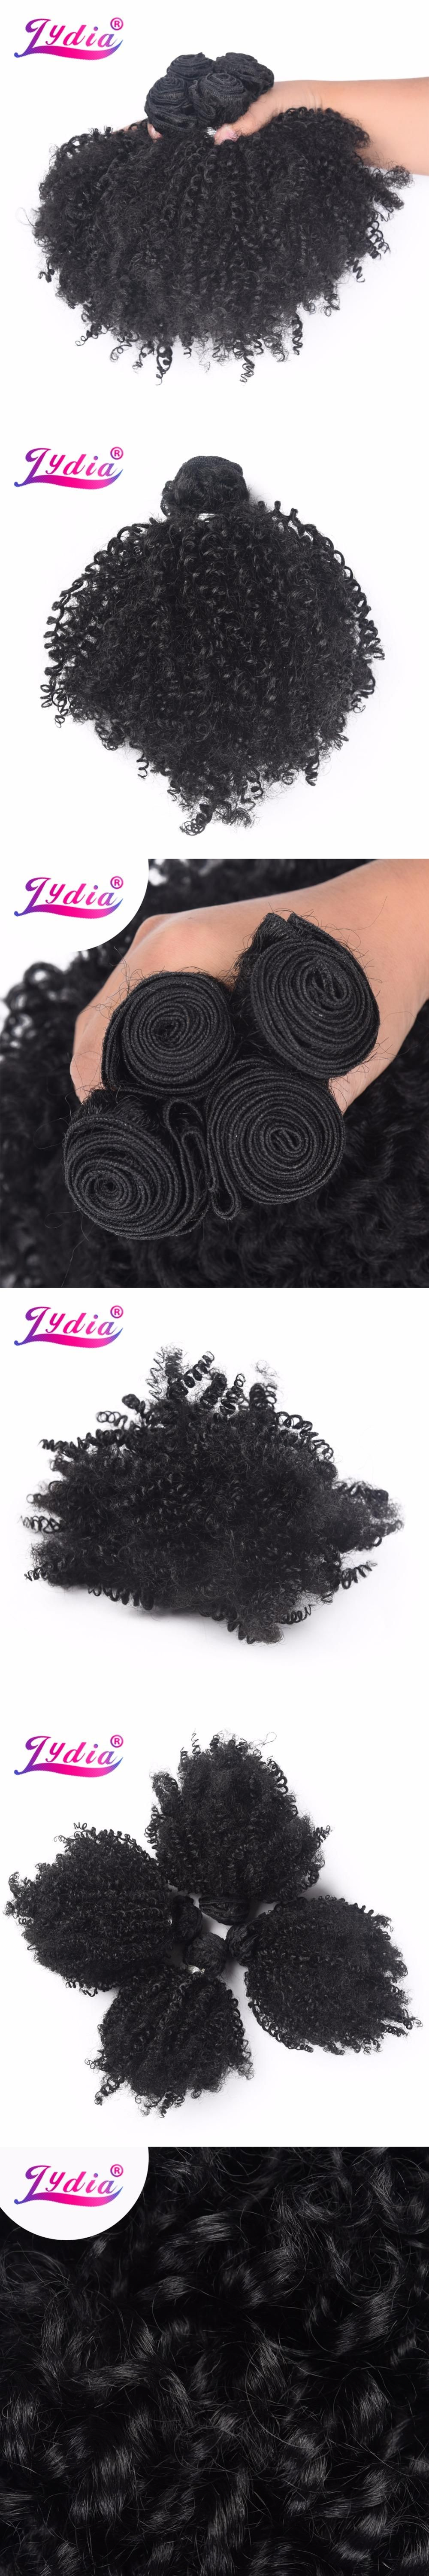 Lydia Synthetic Afro Kinky Curly Hair Weaving 1 Piece Nature Color